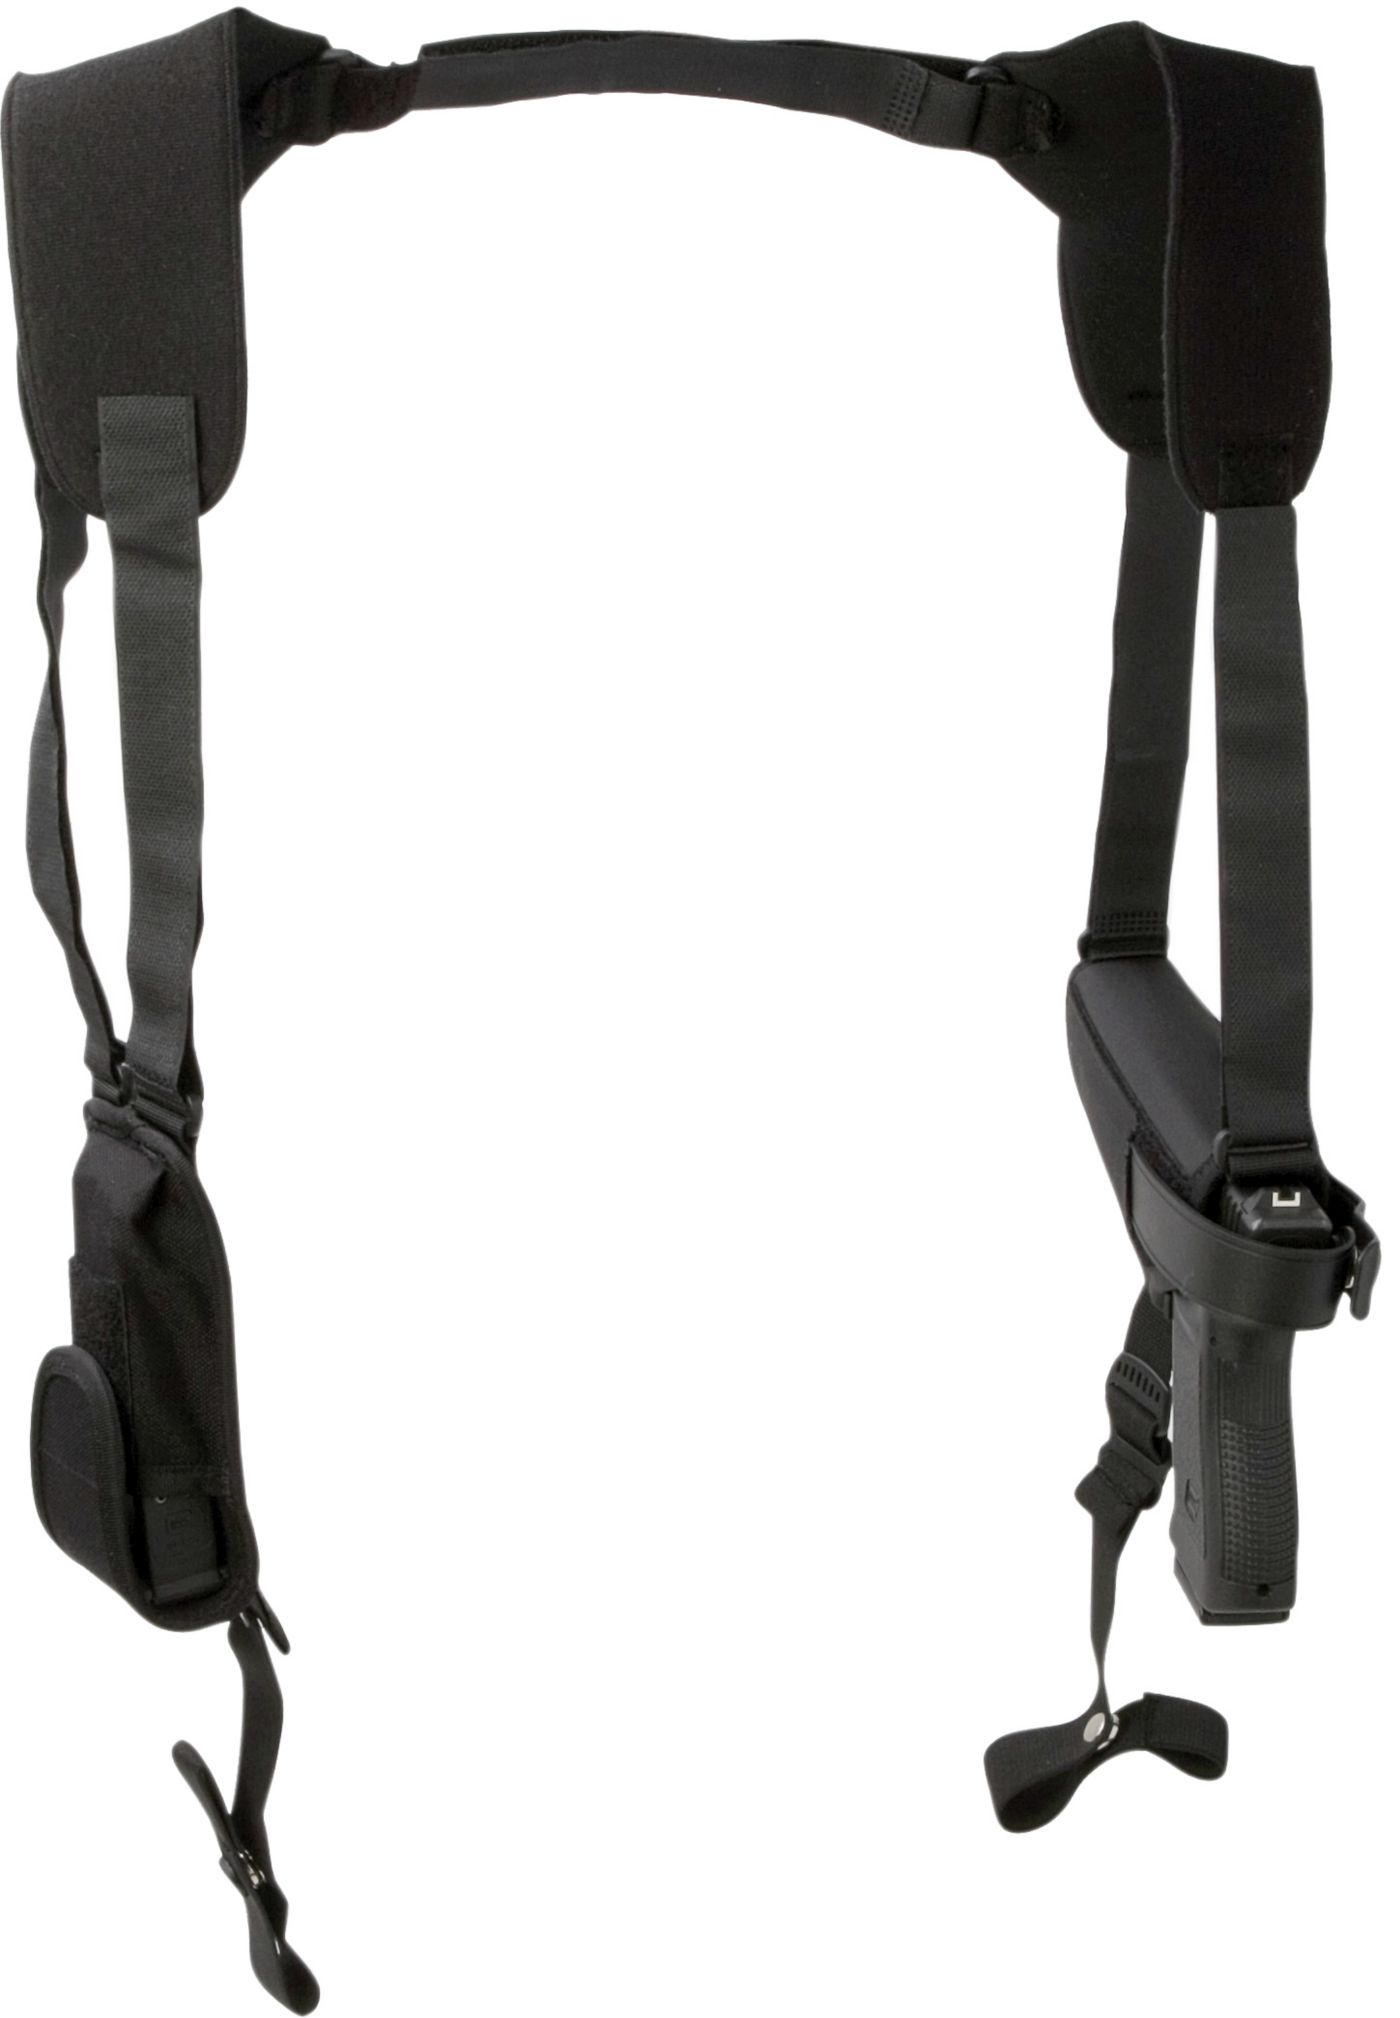 Uncle Mike's Pro-Pak Ambidextrous Horizontal Shoulder Holsters